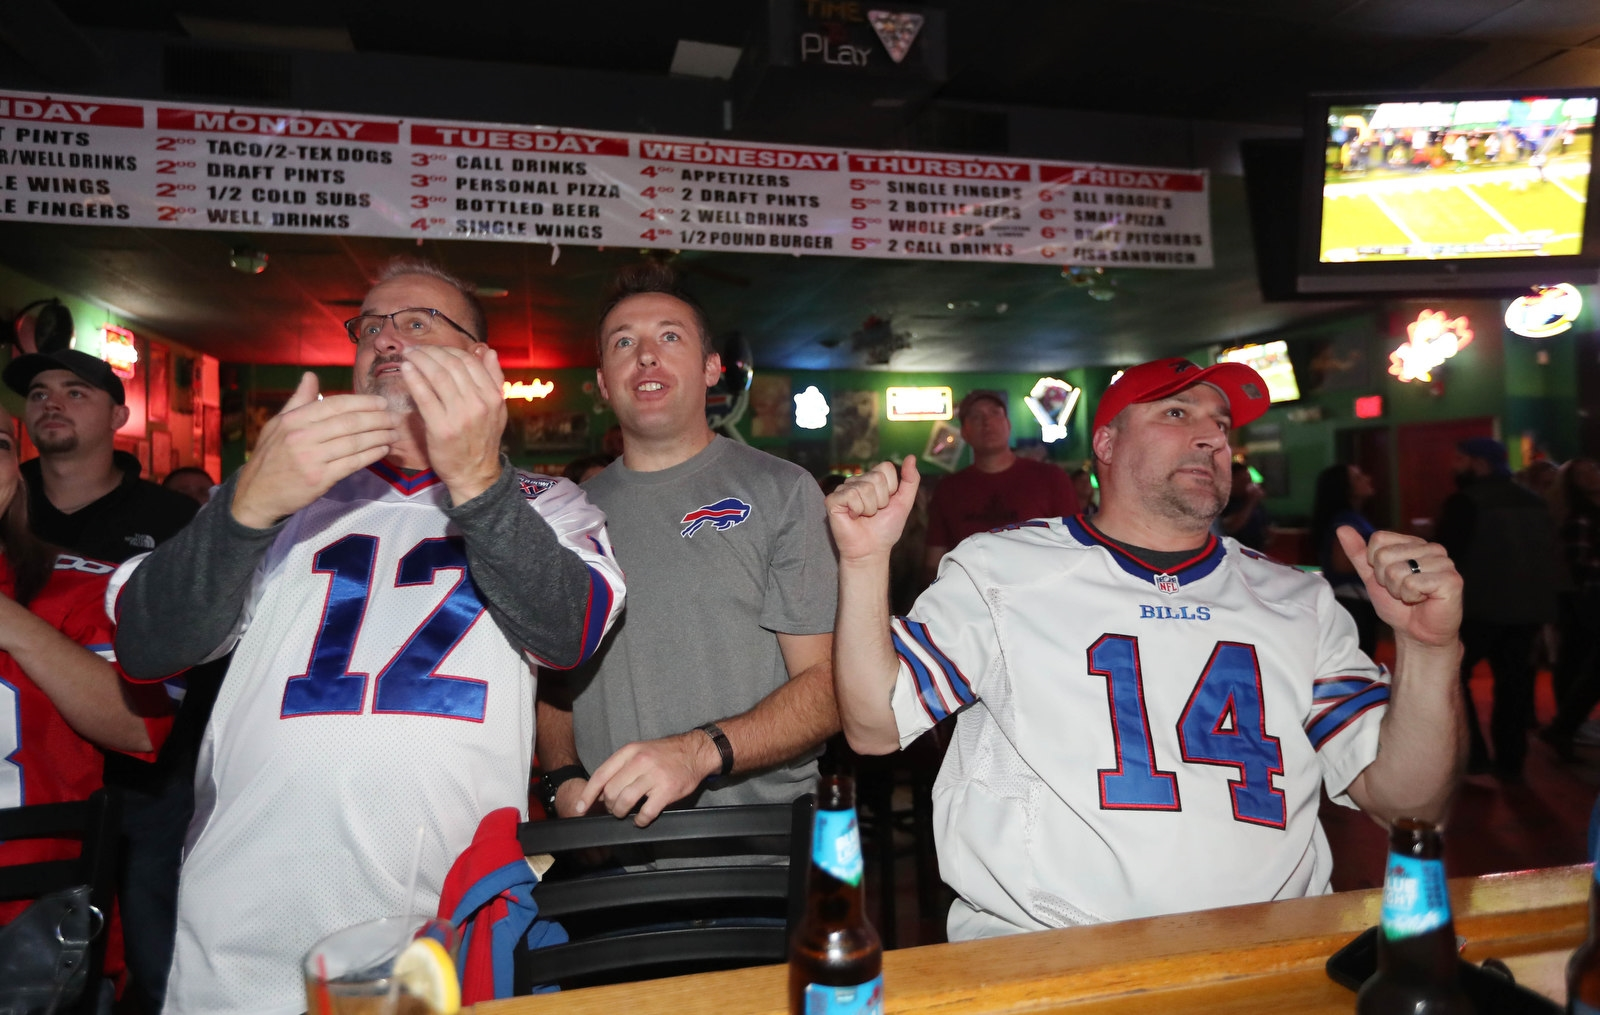 Brian Willison of the Town of Tonawanda, Dan Scott of Buffalo, and Steve Marchiano of the Town of Tonawanda, really get into the game.